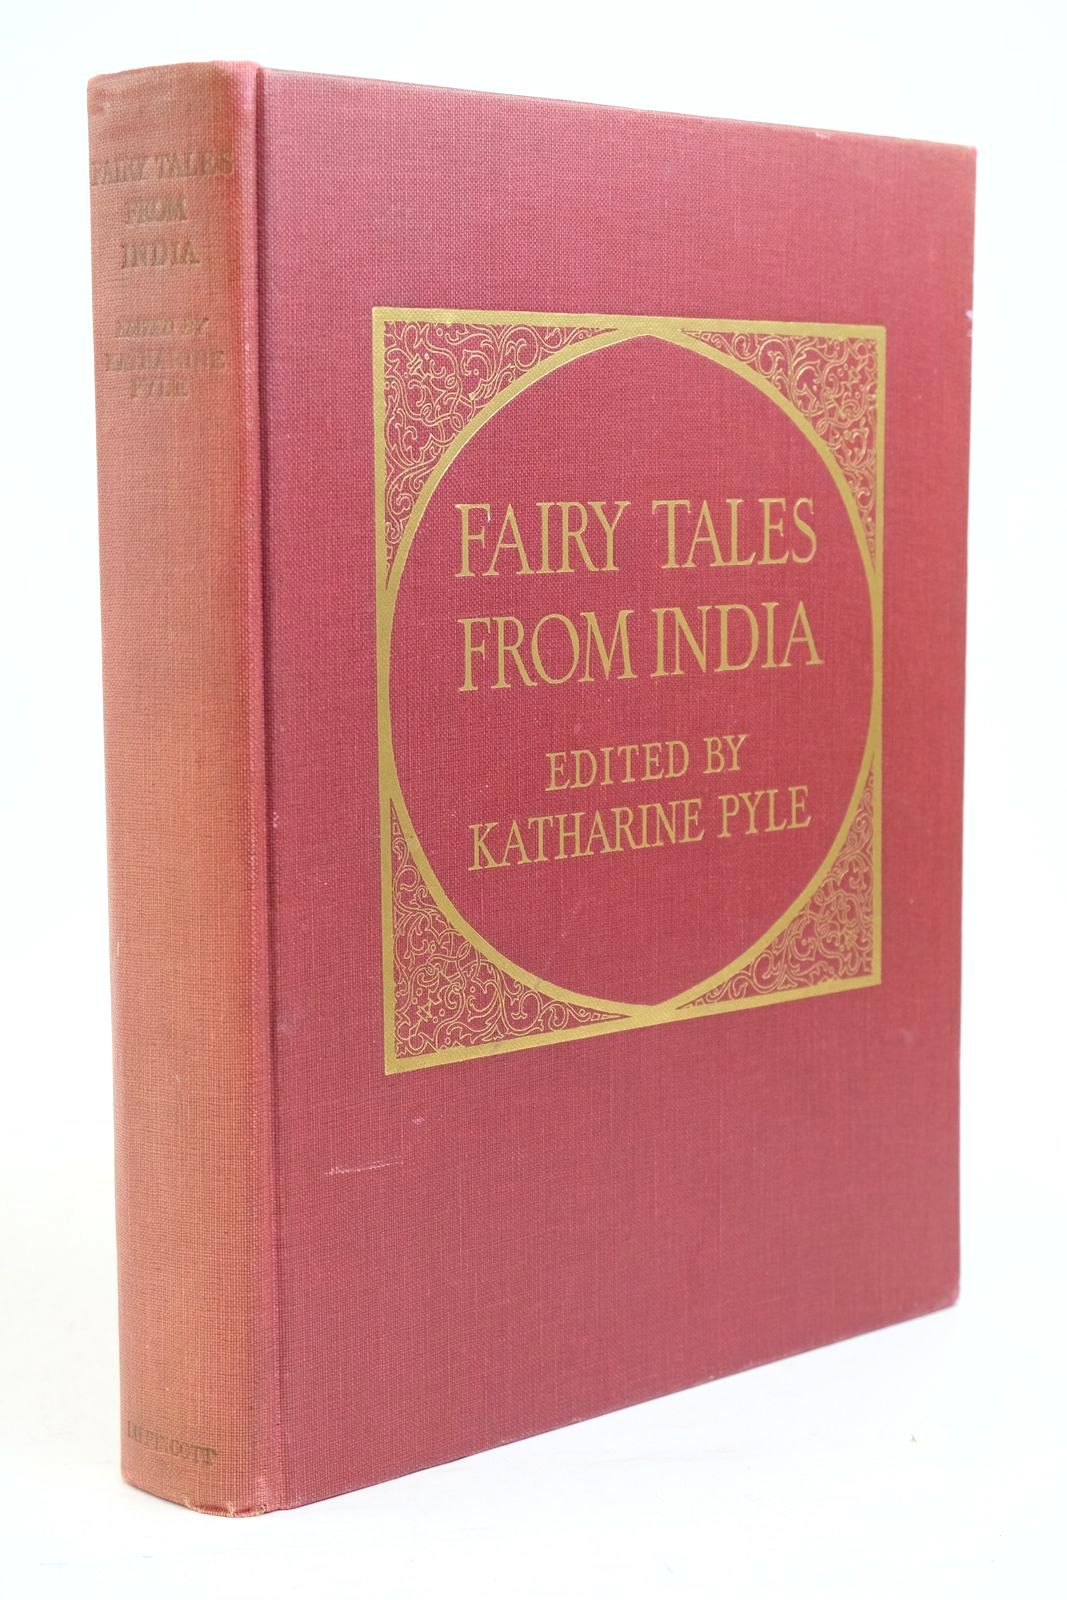 Photo of FAIRY TALES FROM INDIA written by Pyle, Katharine illustrated by Pyle, Katharine published by J.B. Lippincott Company (STOCK CODE: 1321198)  for sale by Stella & Rose's Books